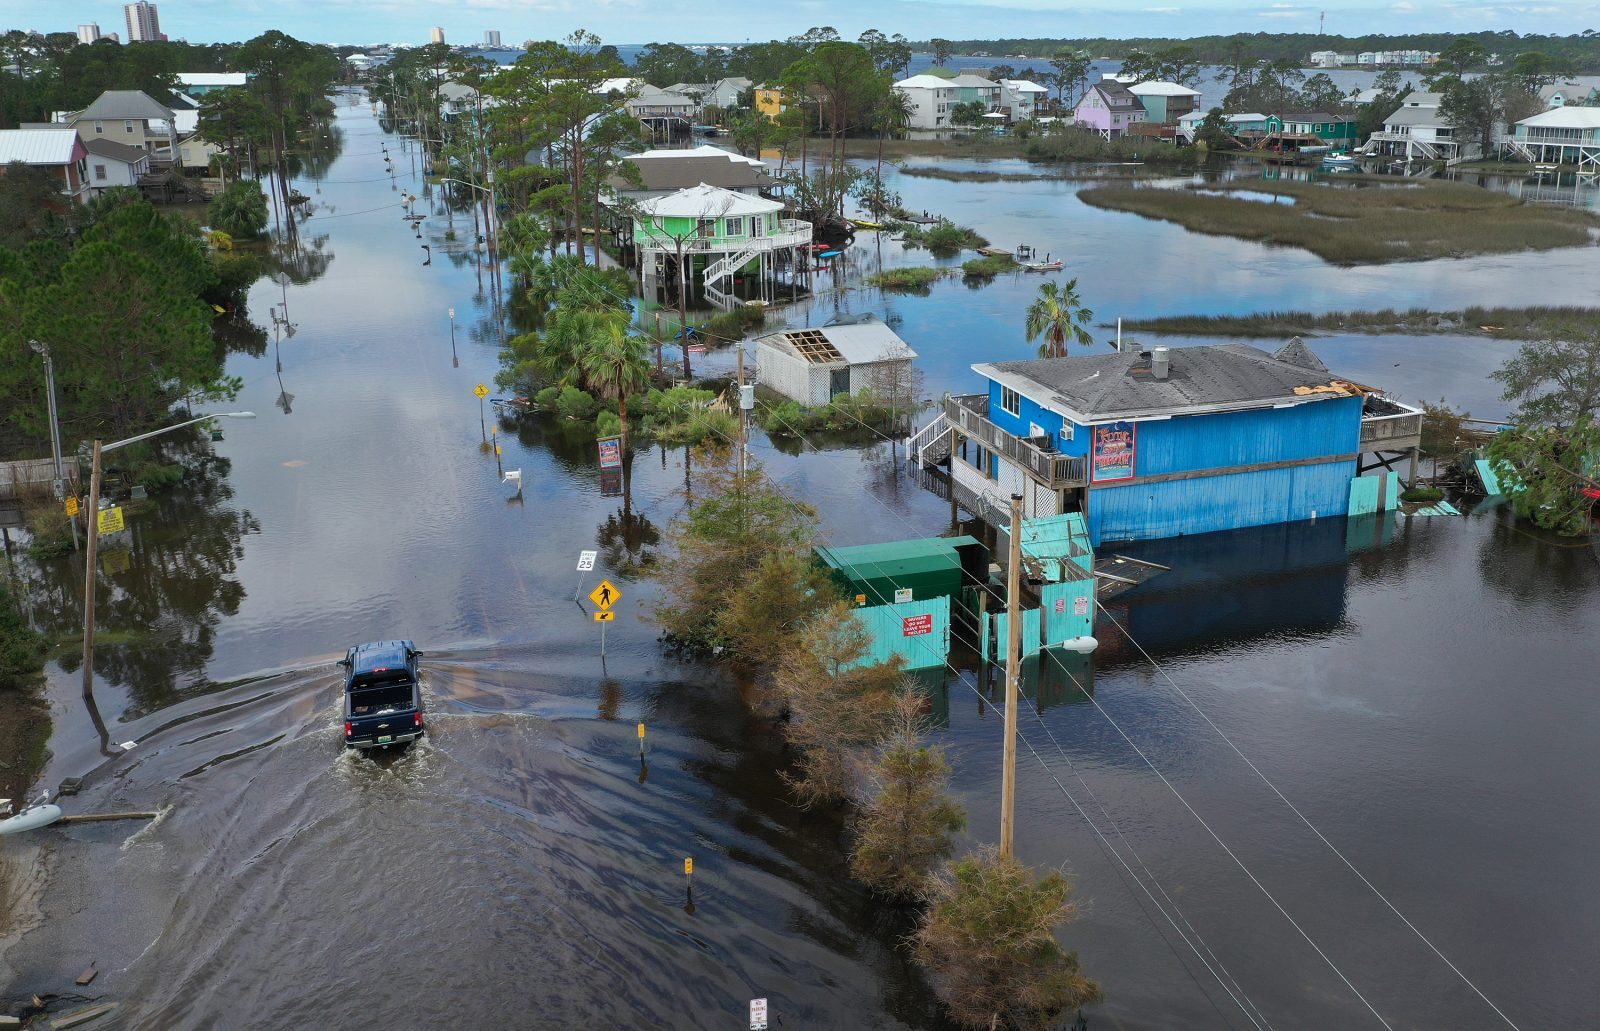 An aerial view from a drone shows a vehicle driving through a flooded street after Hurricane Sally passed through the area on September 17, 2020 in Gulf Shores, Alabama. The storm came ashore with heavy rain and high winds.